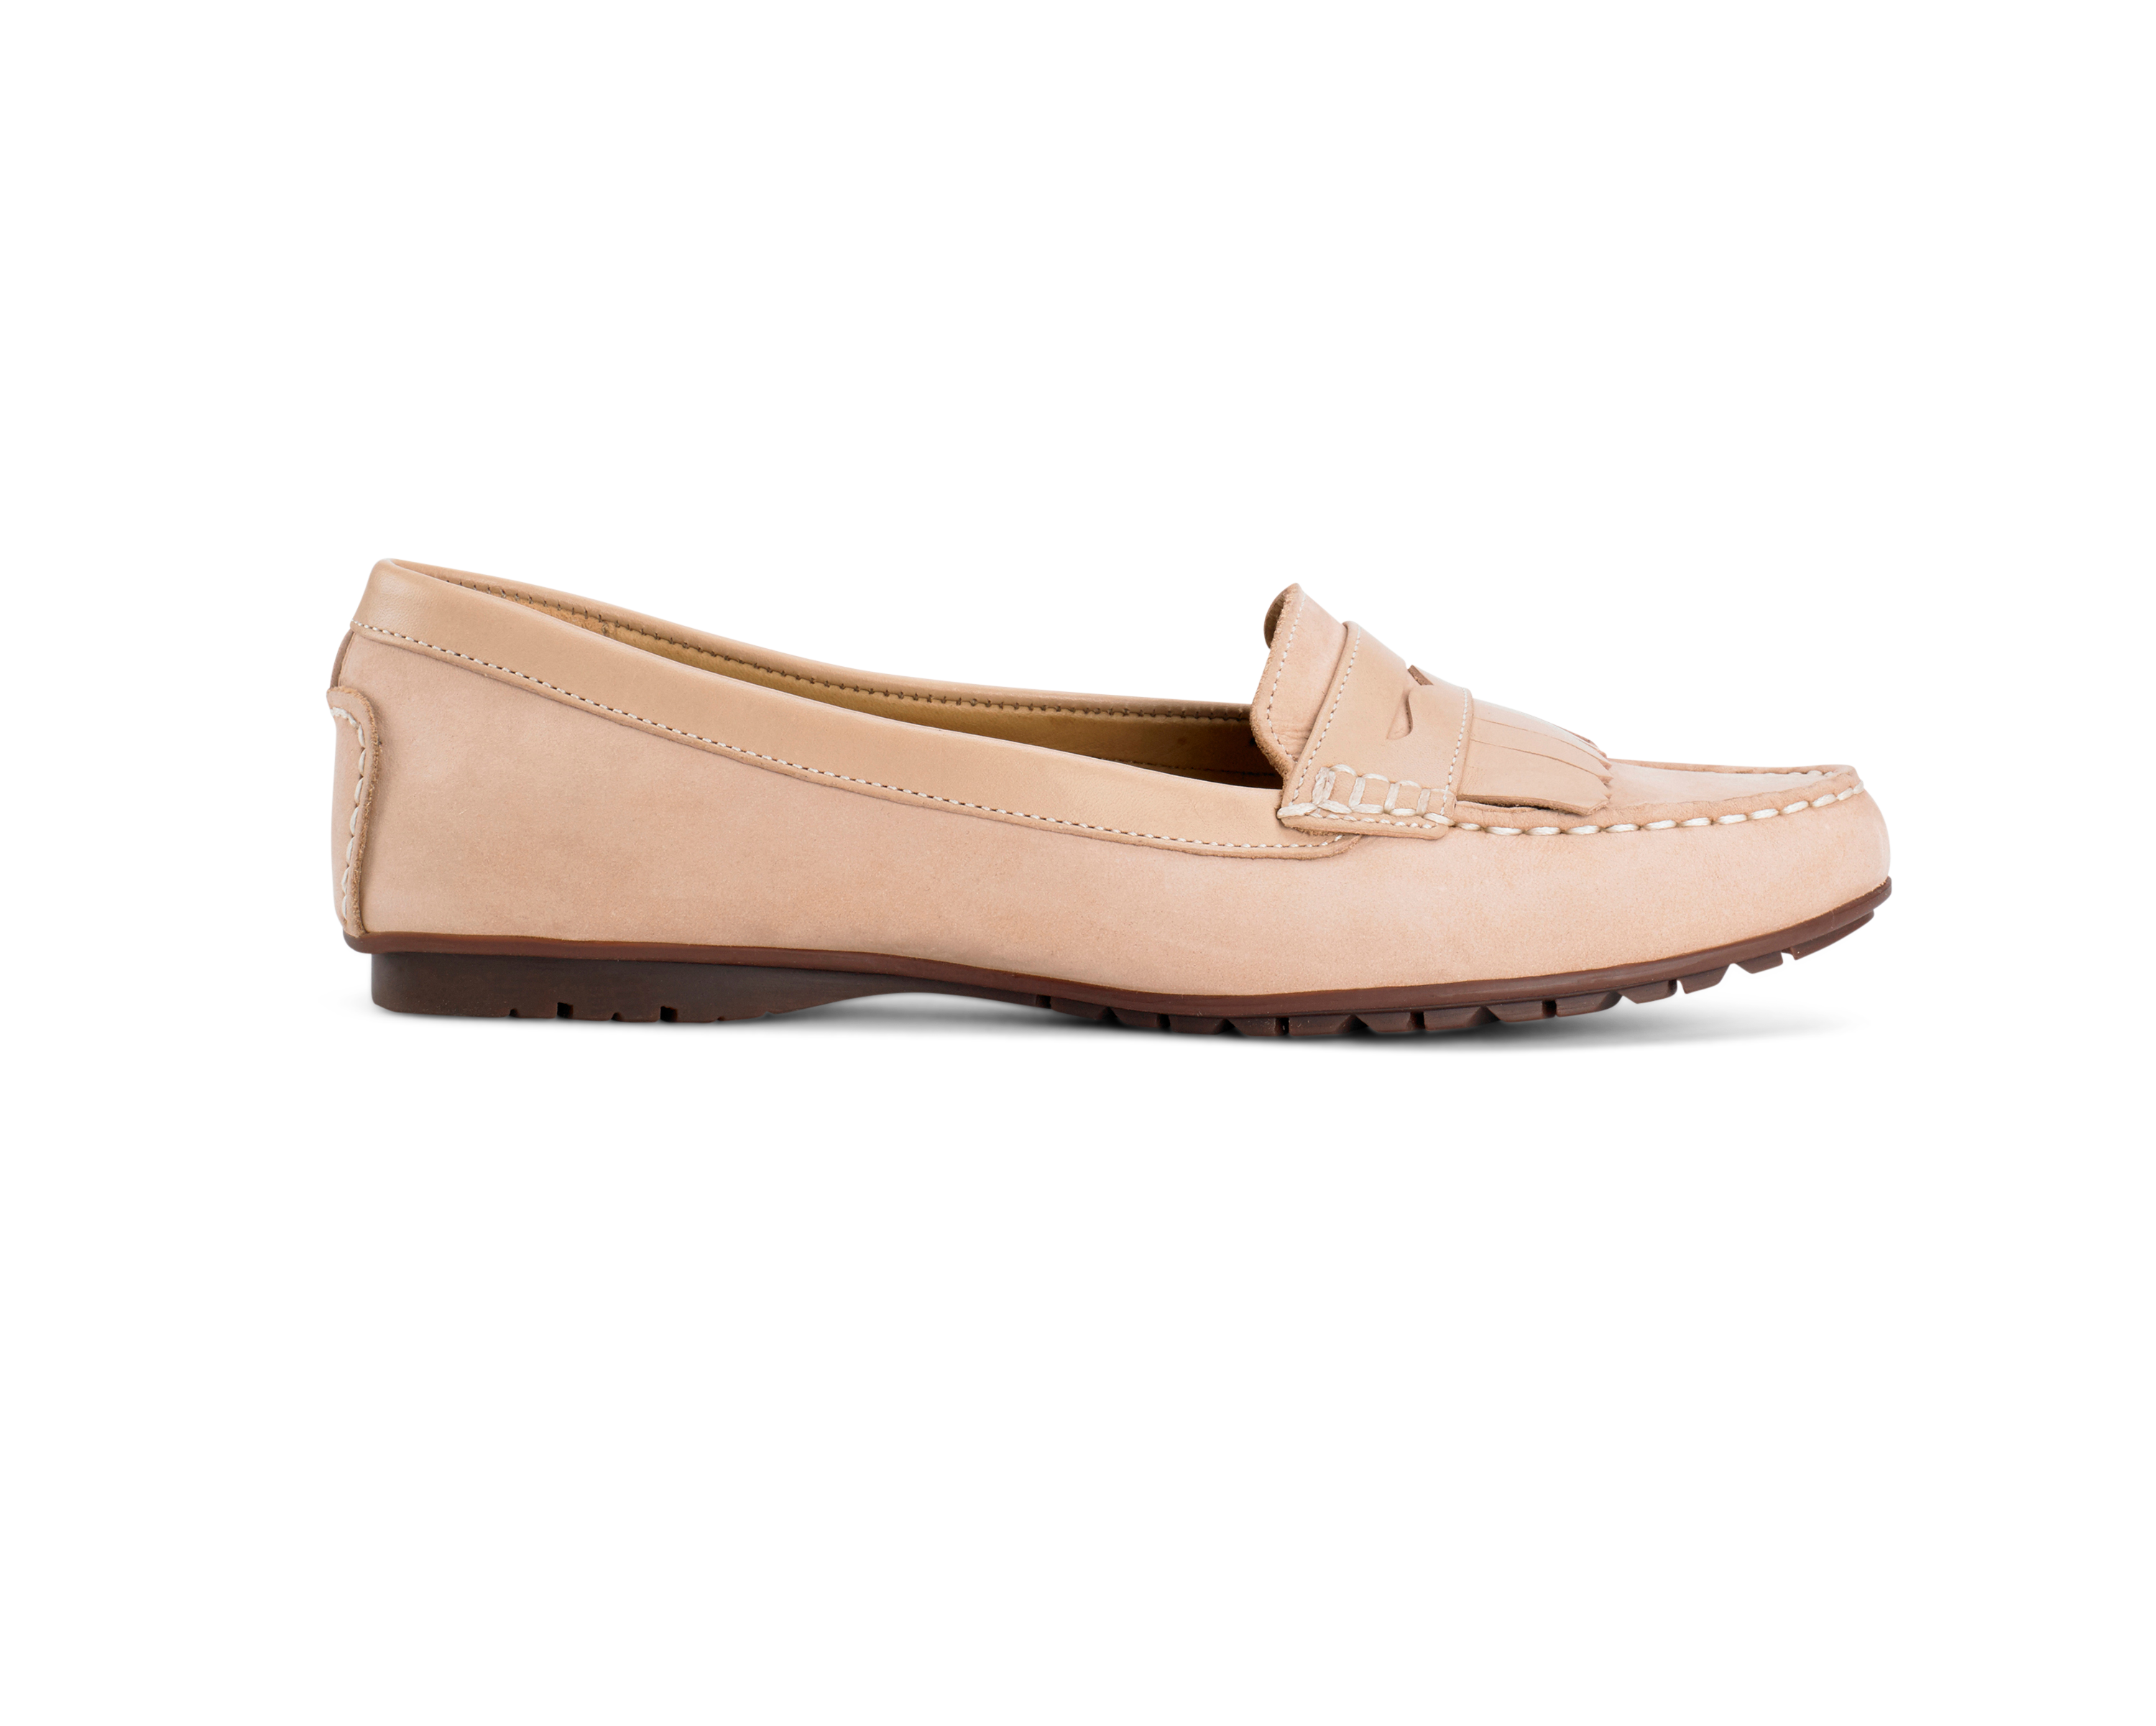 Flat Shoes Women Pink Images